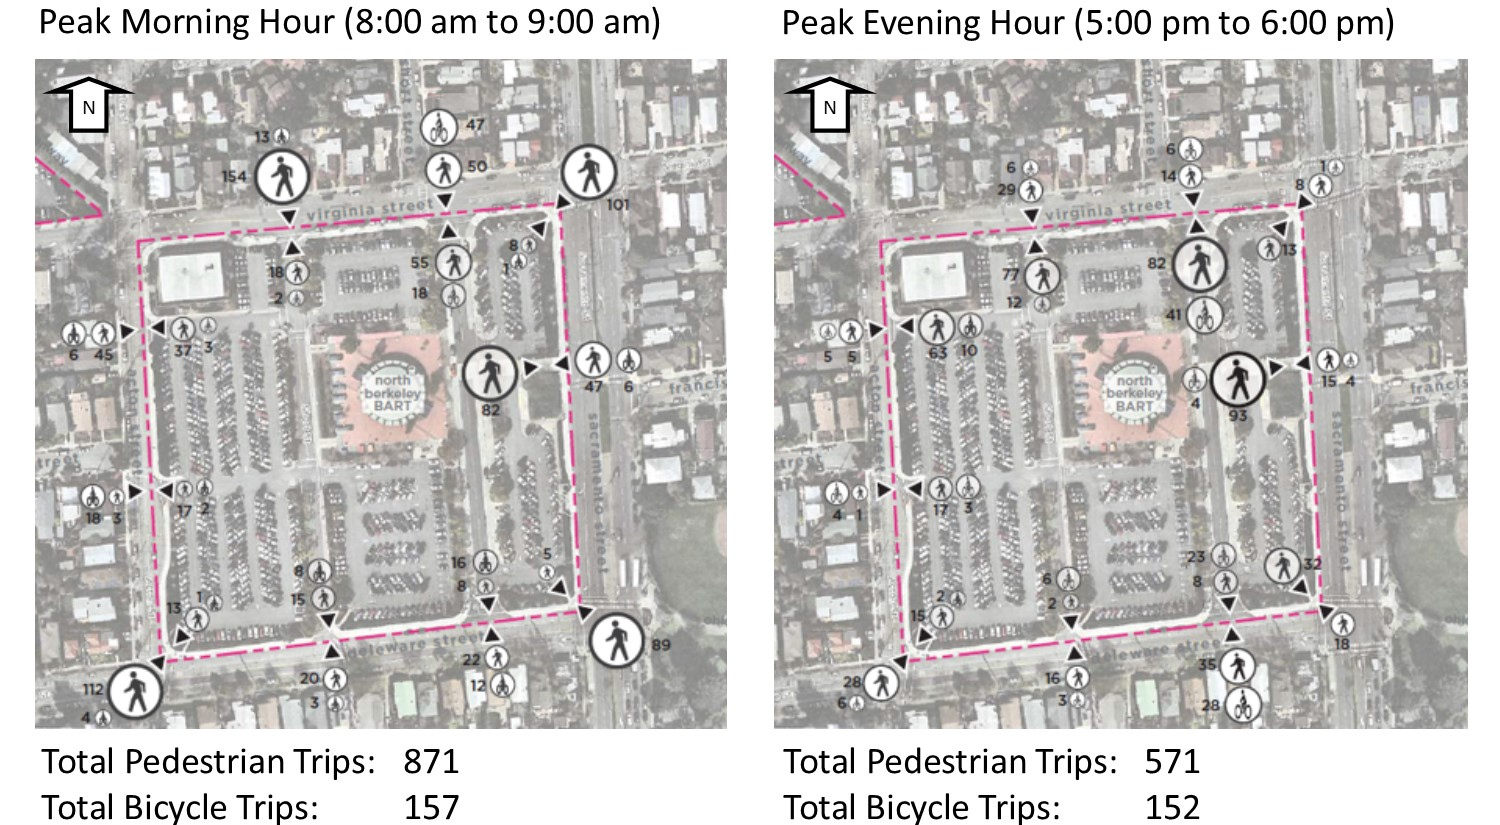 Maps illustrating pedestrian and bicycle entries and exits at North Berkeley station